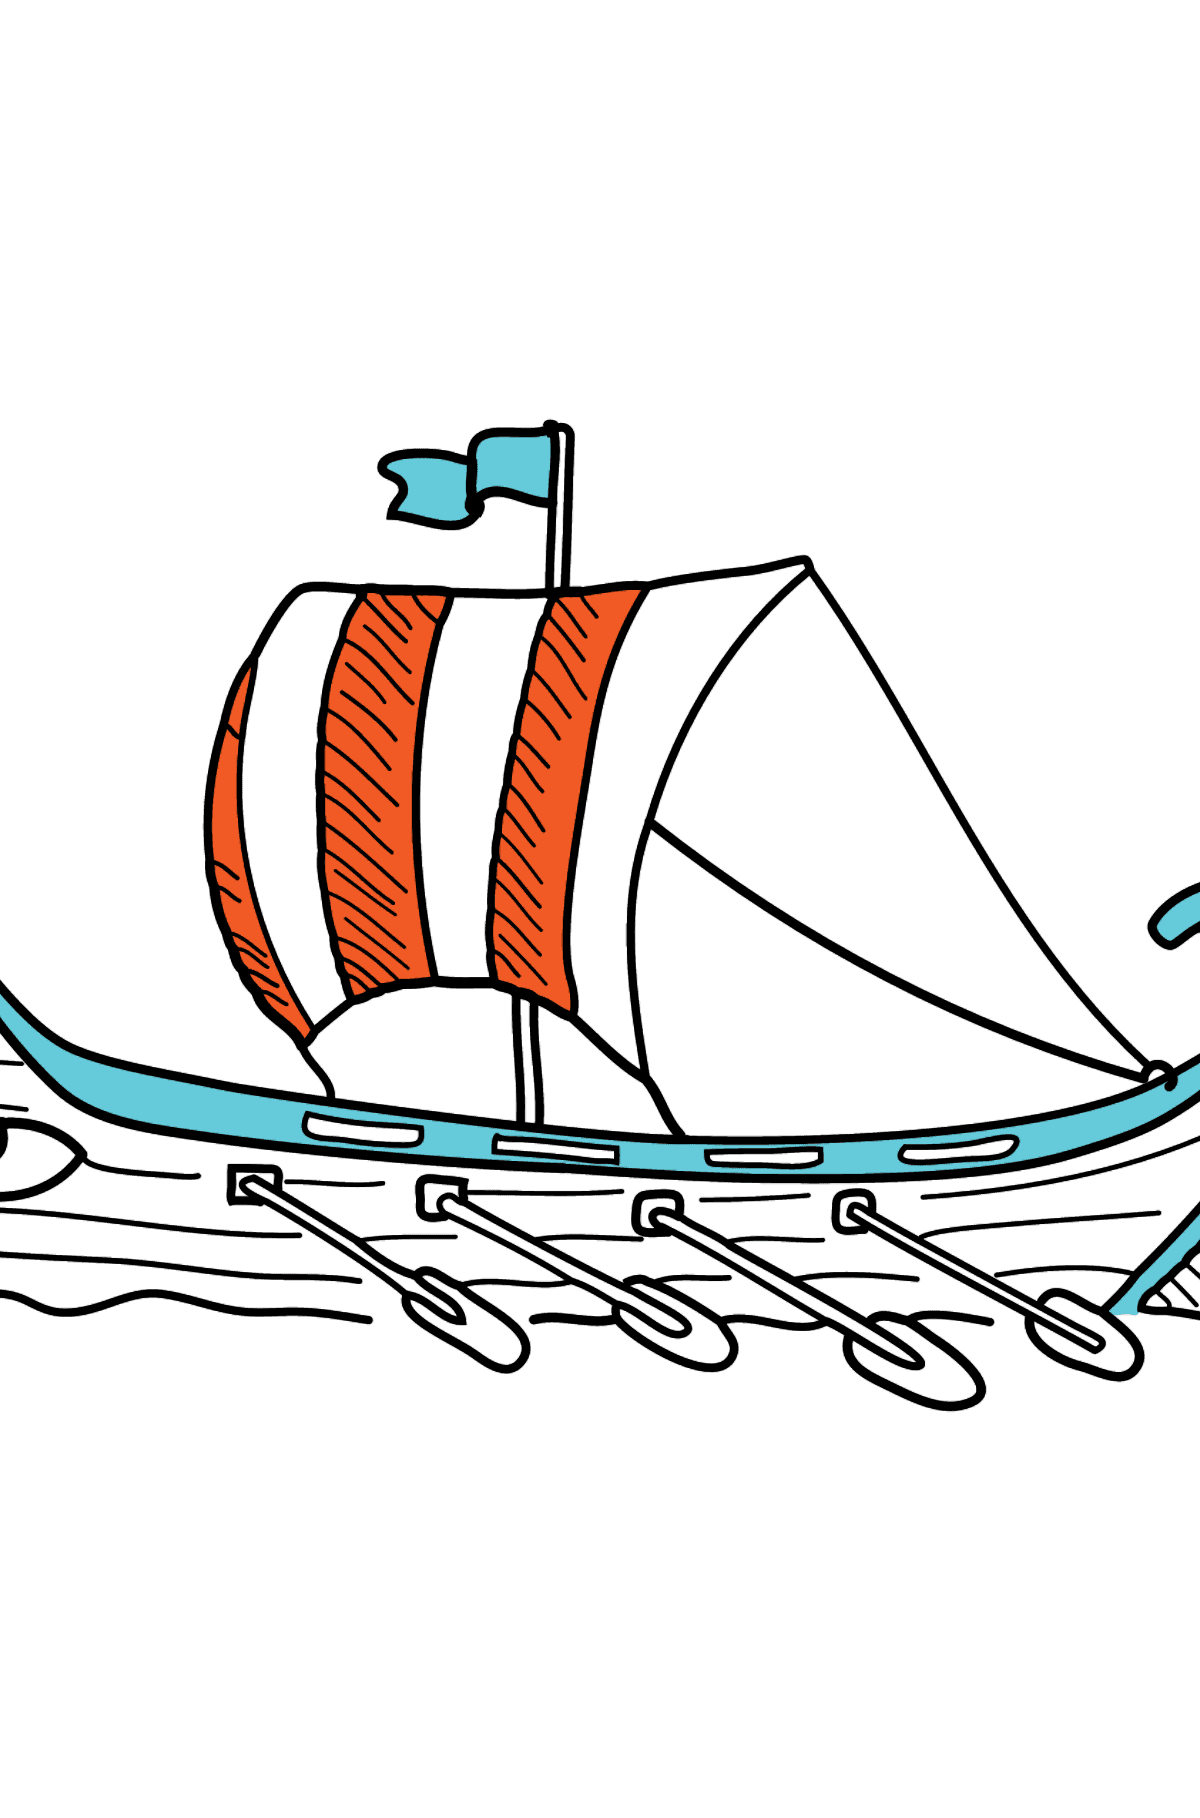 Coloring Page - A River Rowing Boat - Coloring Pages for Kids